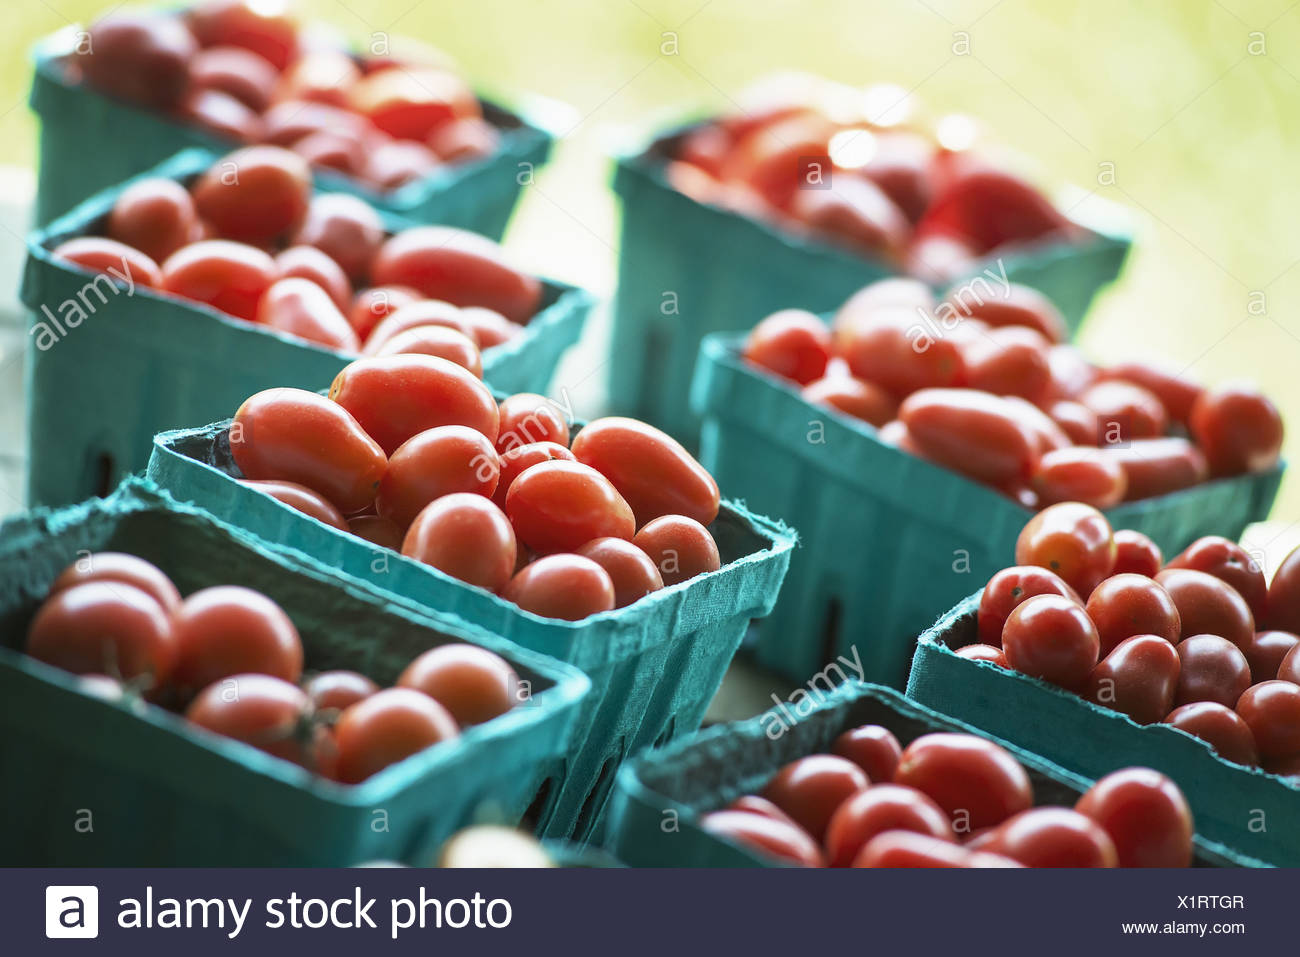 Woodstock New York USA Organic red cherry tomatoes in boxes market stall - Stock Image